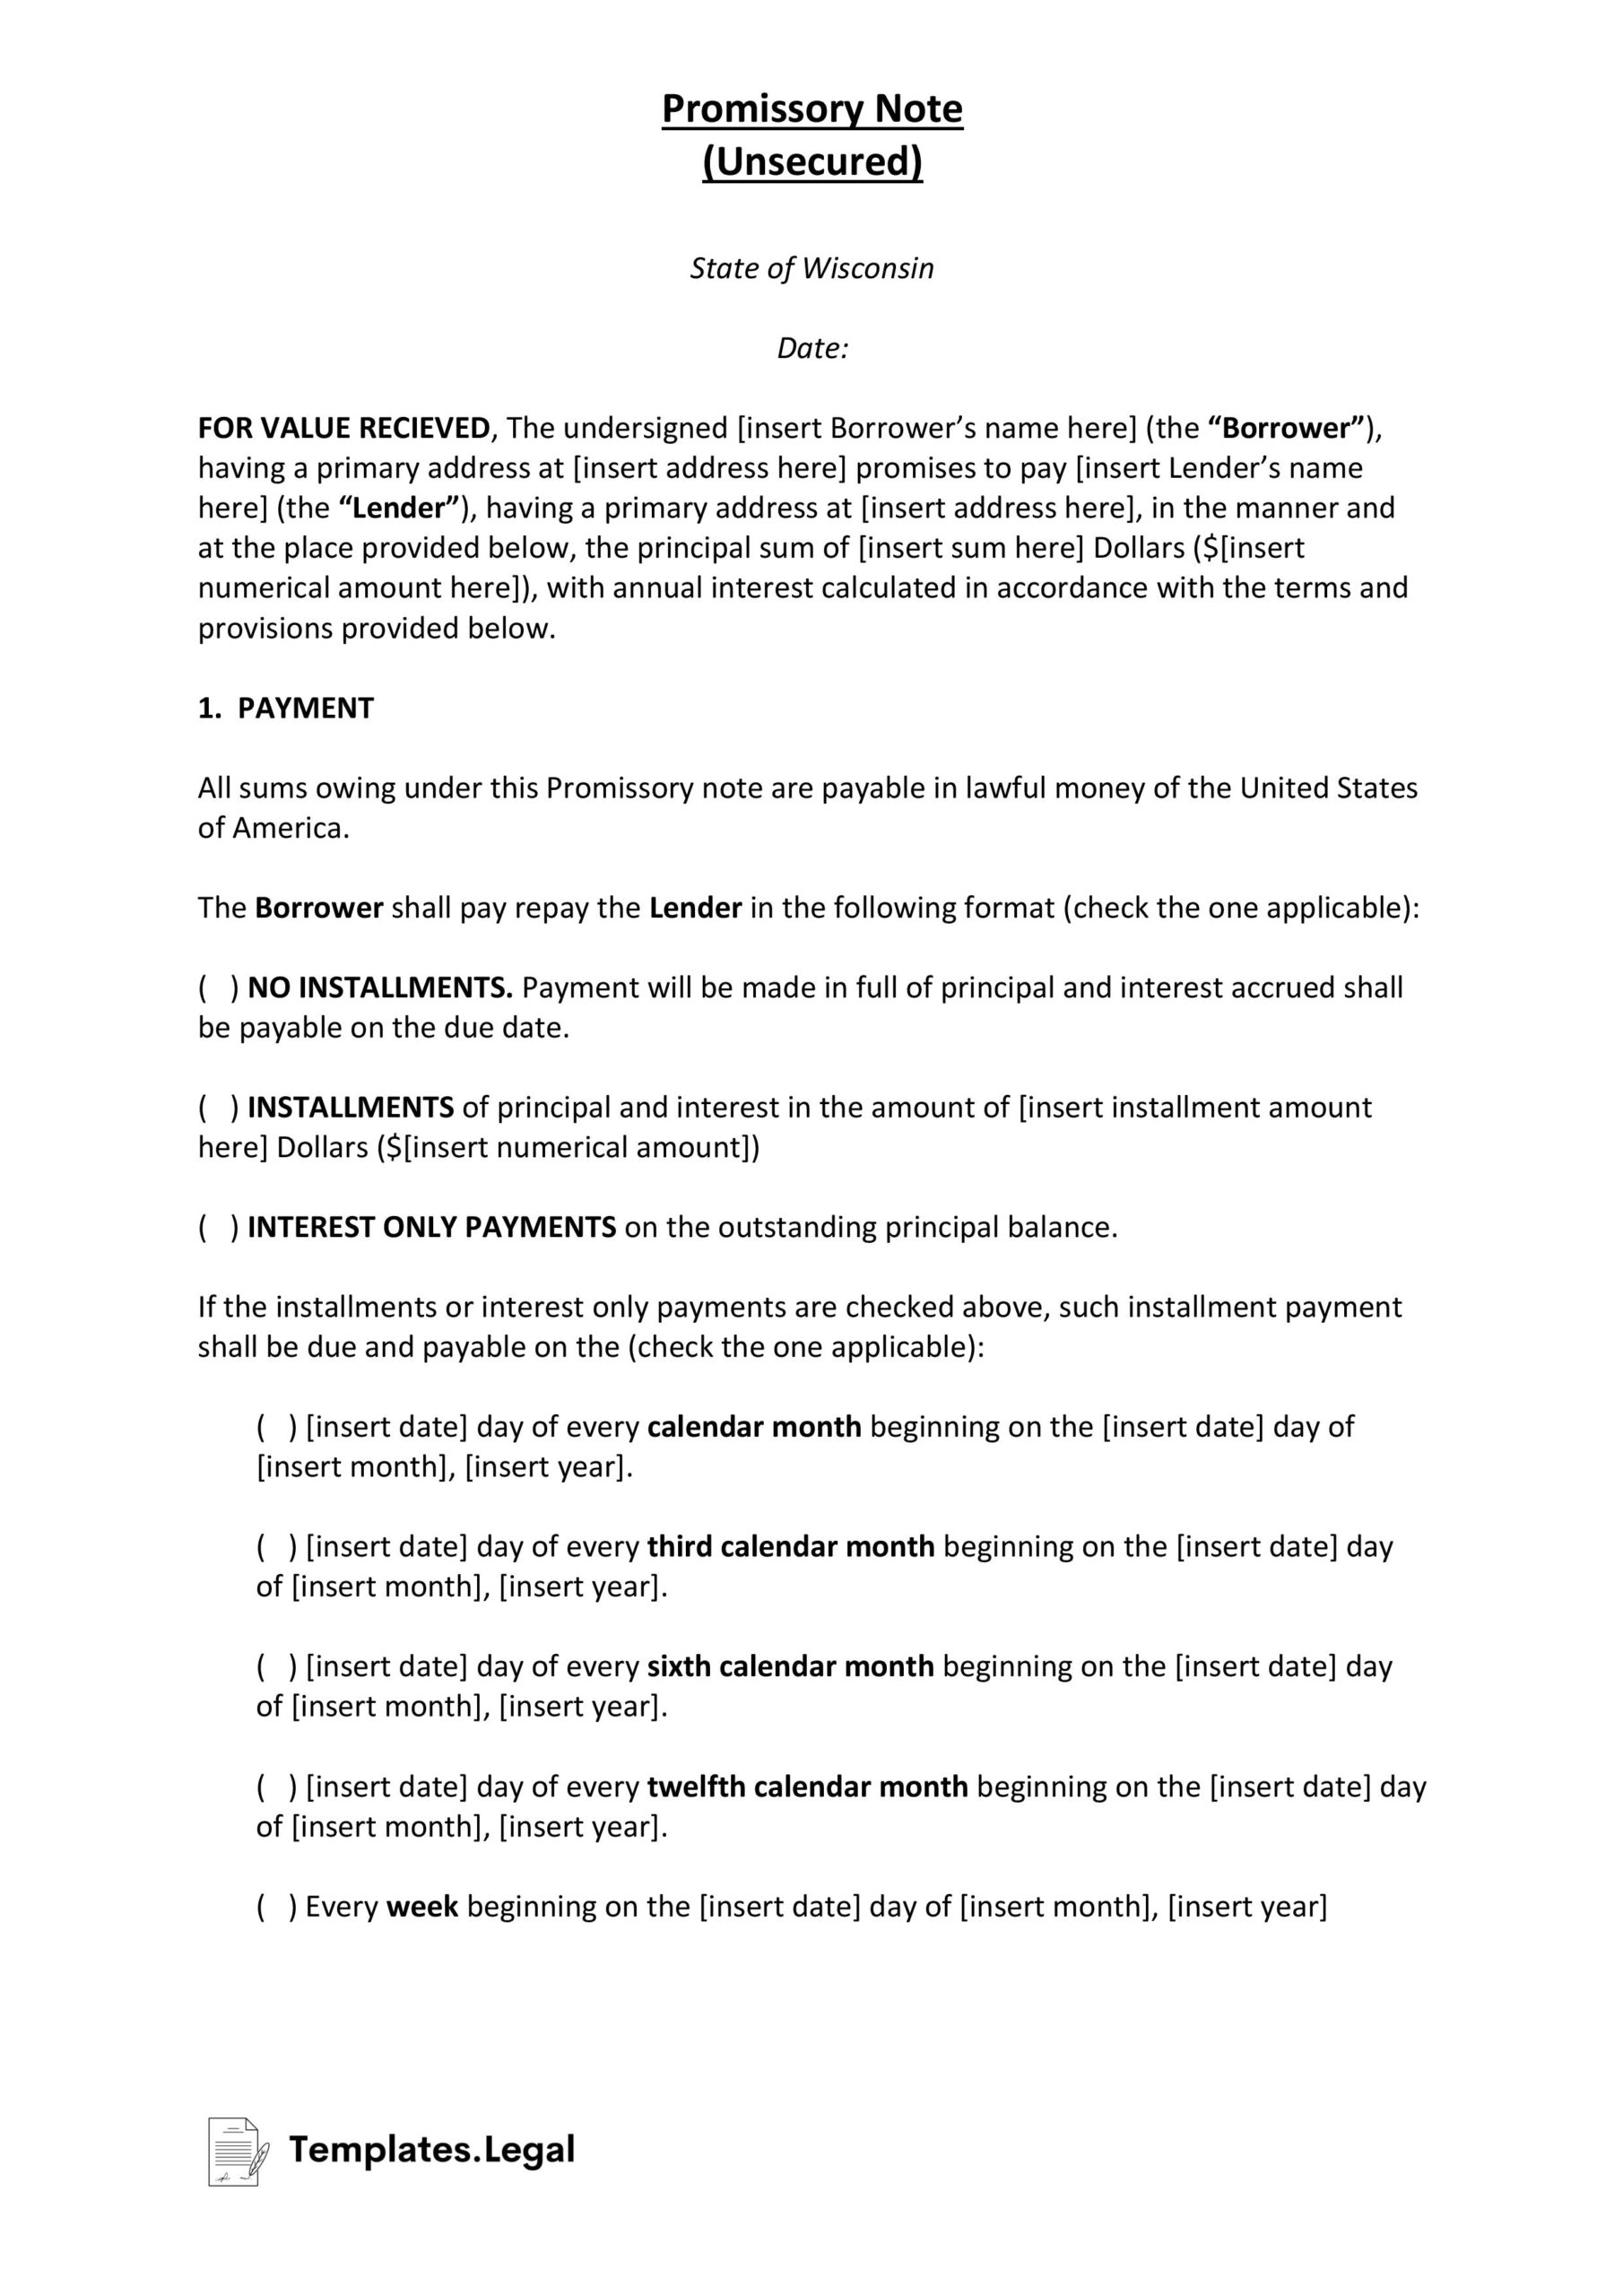 Wisconsin Unsecured Promissory Note - Templates.Legal